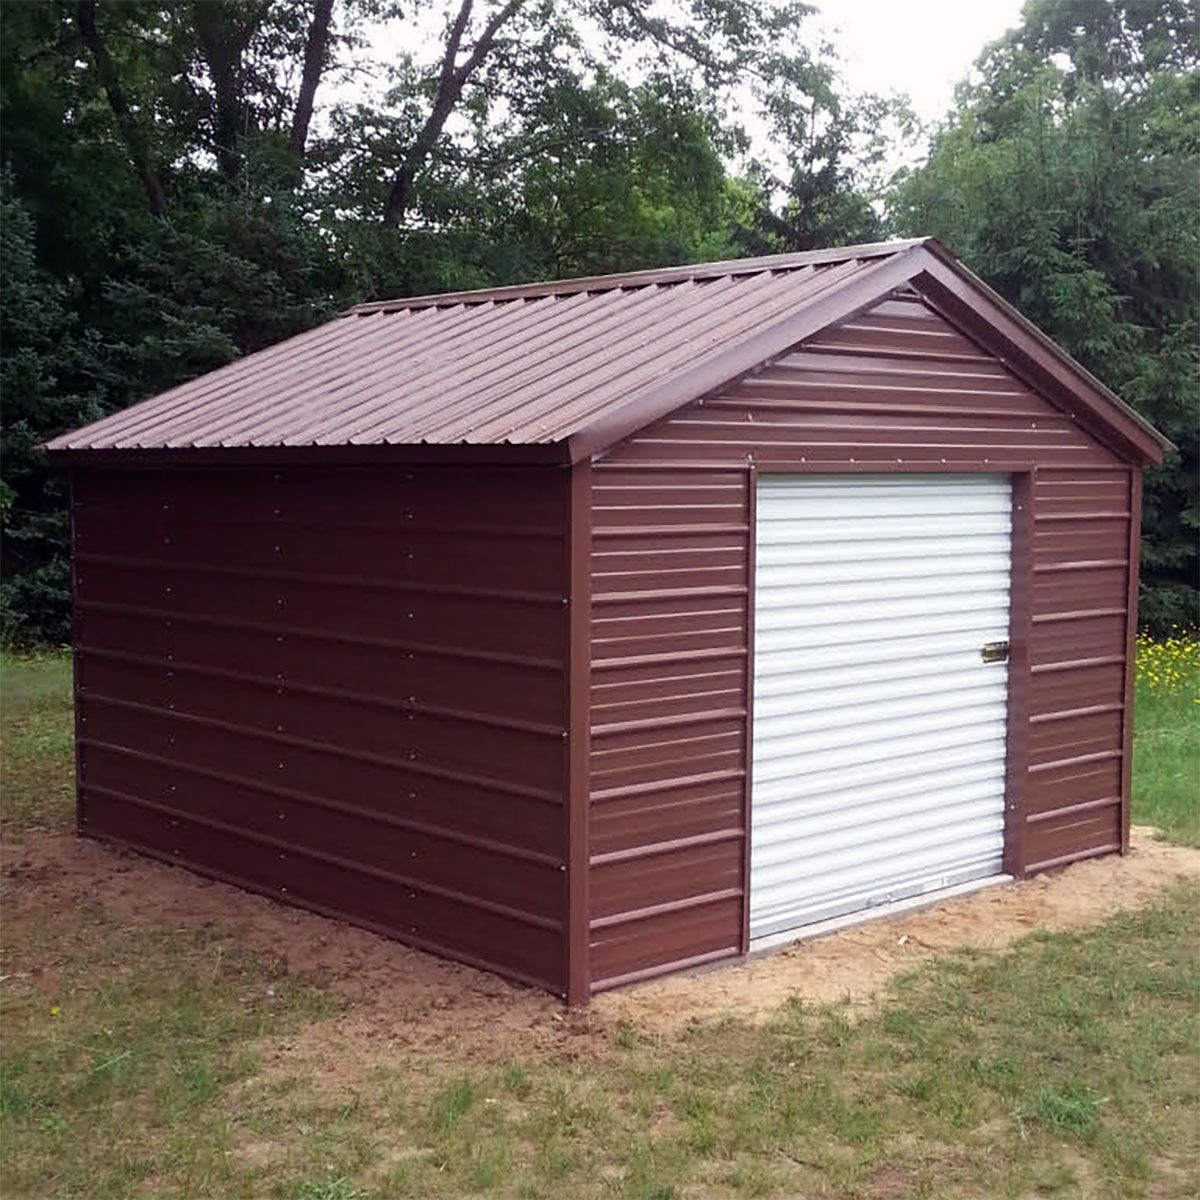 10x12x8 metal shed installed in michiganvisit wwwmidweststeelcarportscom for more information - Garden Sheds Michigan